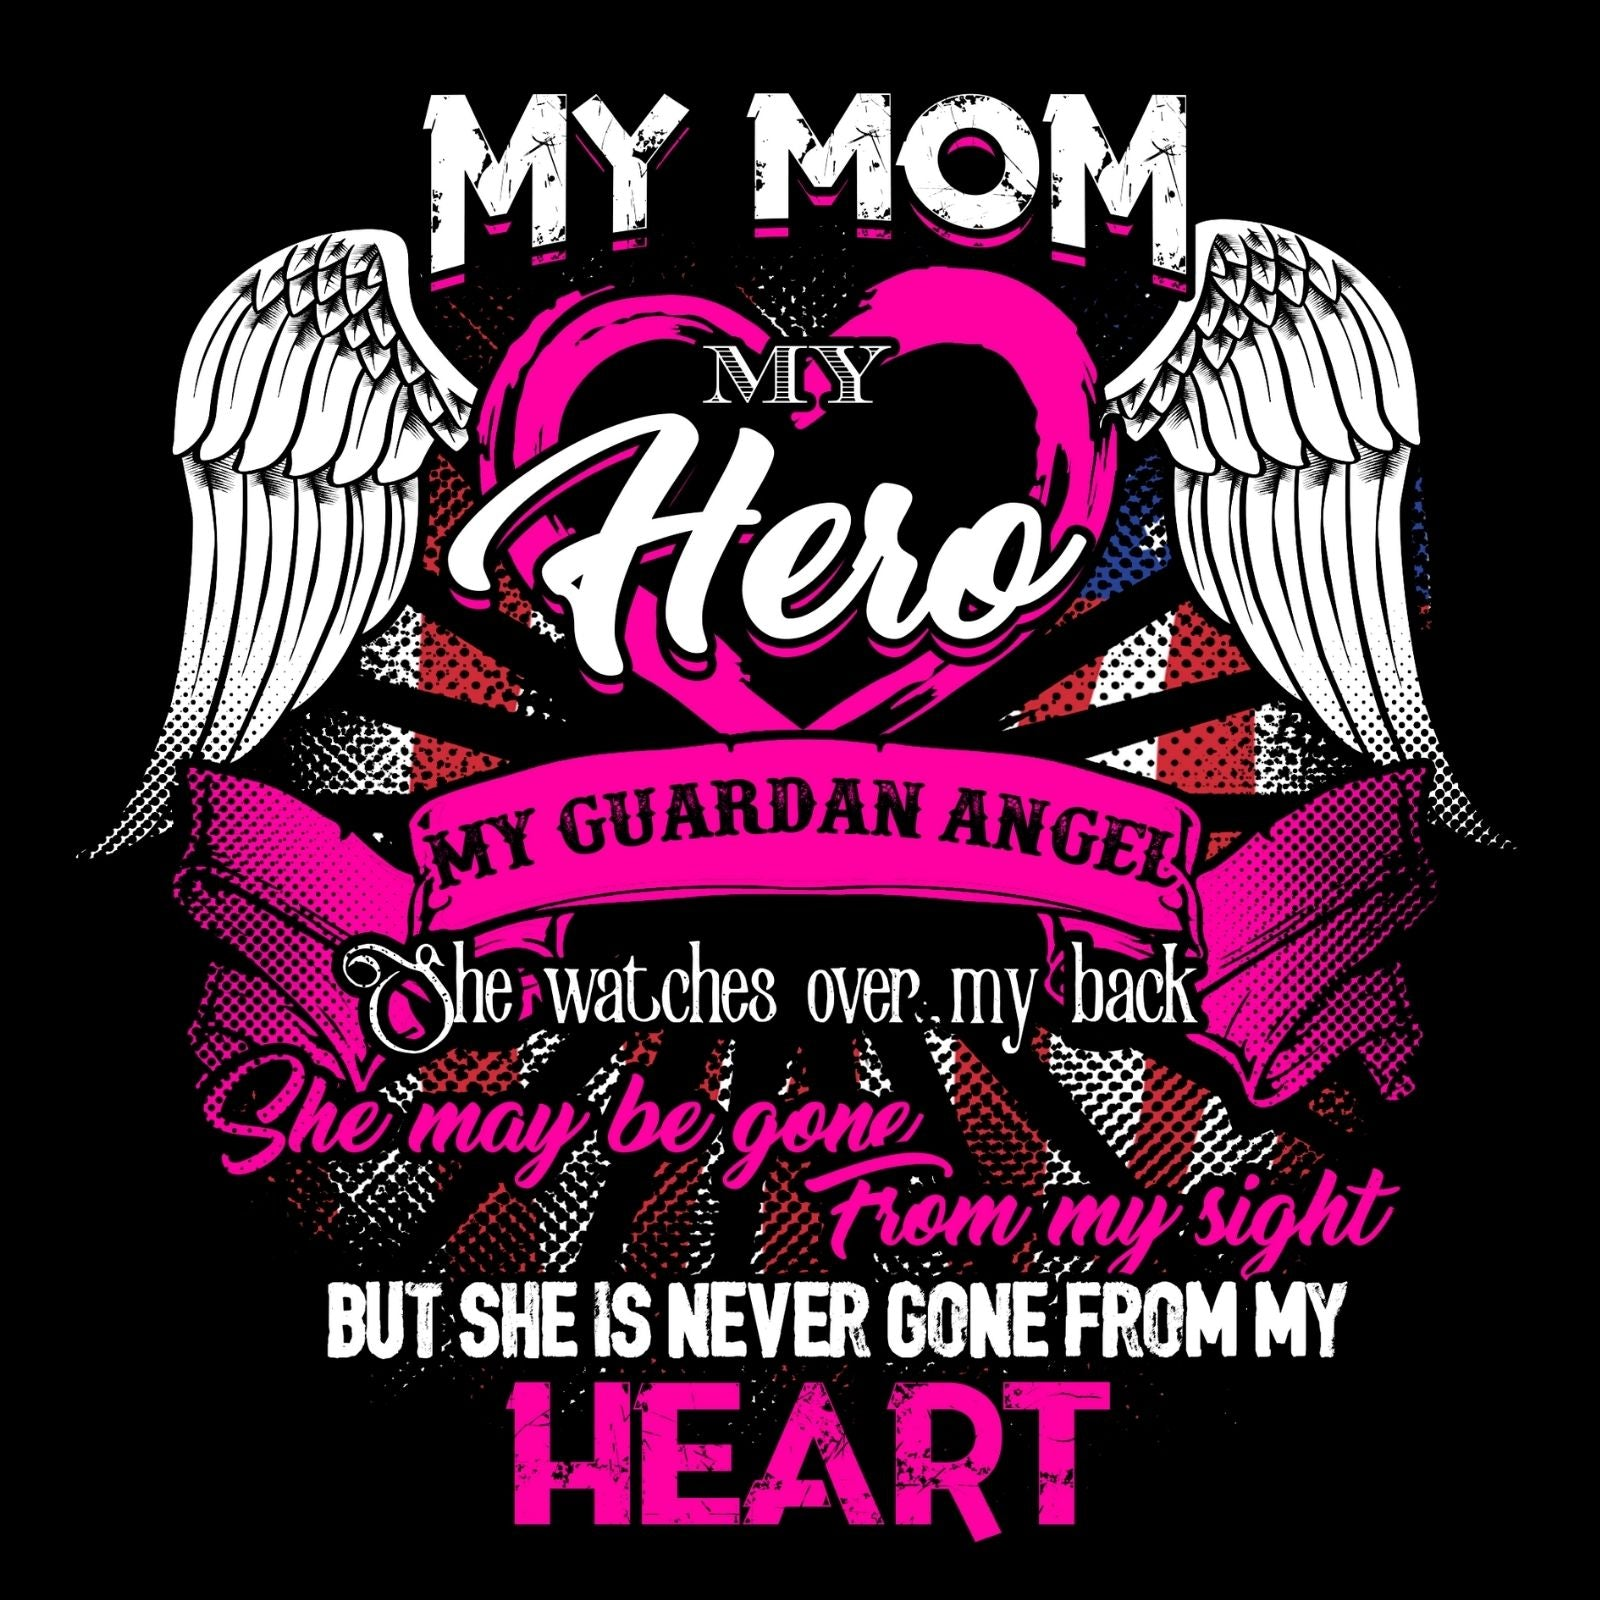 My Mom My Hero My Guardian Angel She Watches Over My Back She Maybe Gone From My Sight But She Is Never Gone From My Heart - Bastard Graphics